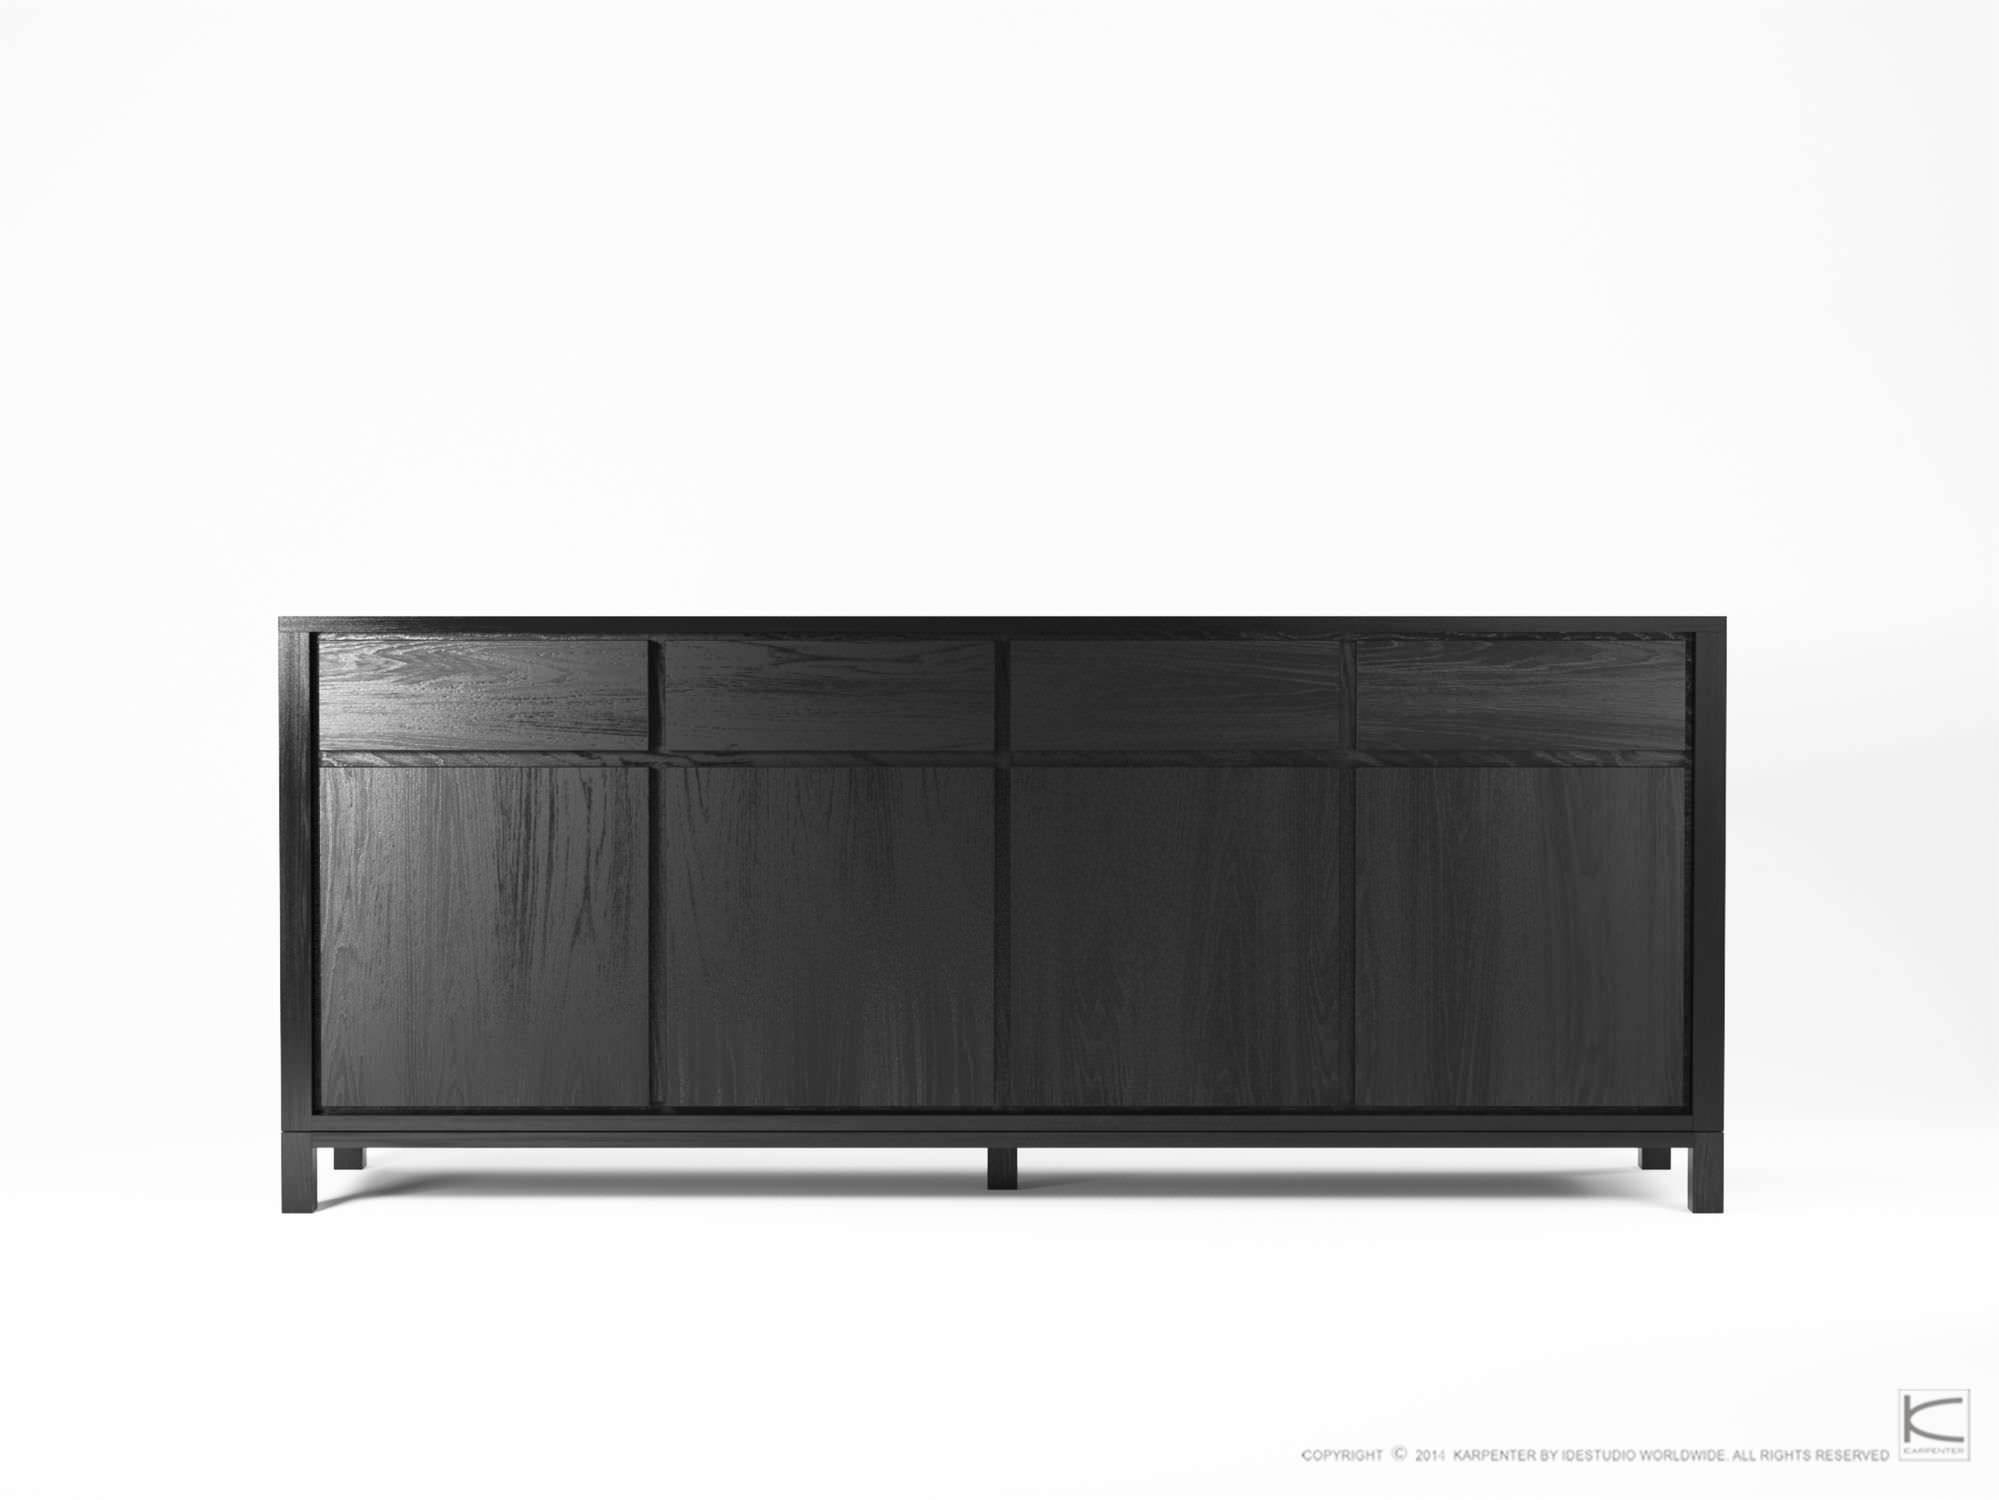 Contemporary Sideboard / Oak / Walnut / Solid Wood - So09 - Karpenter regarding Walnut And Black Sideboards (Image 9 of 30)